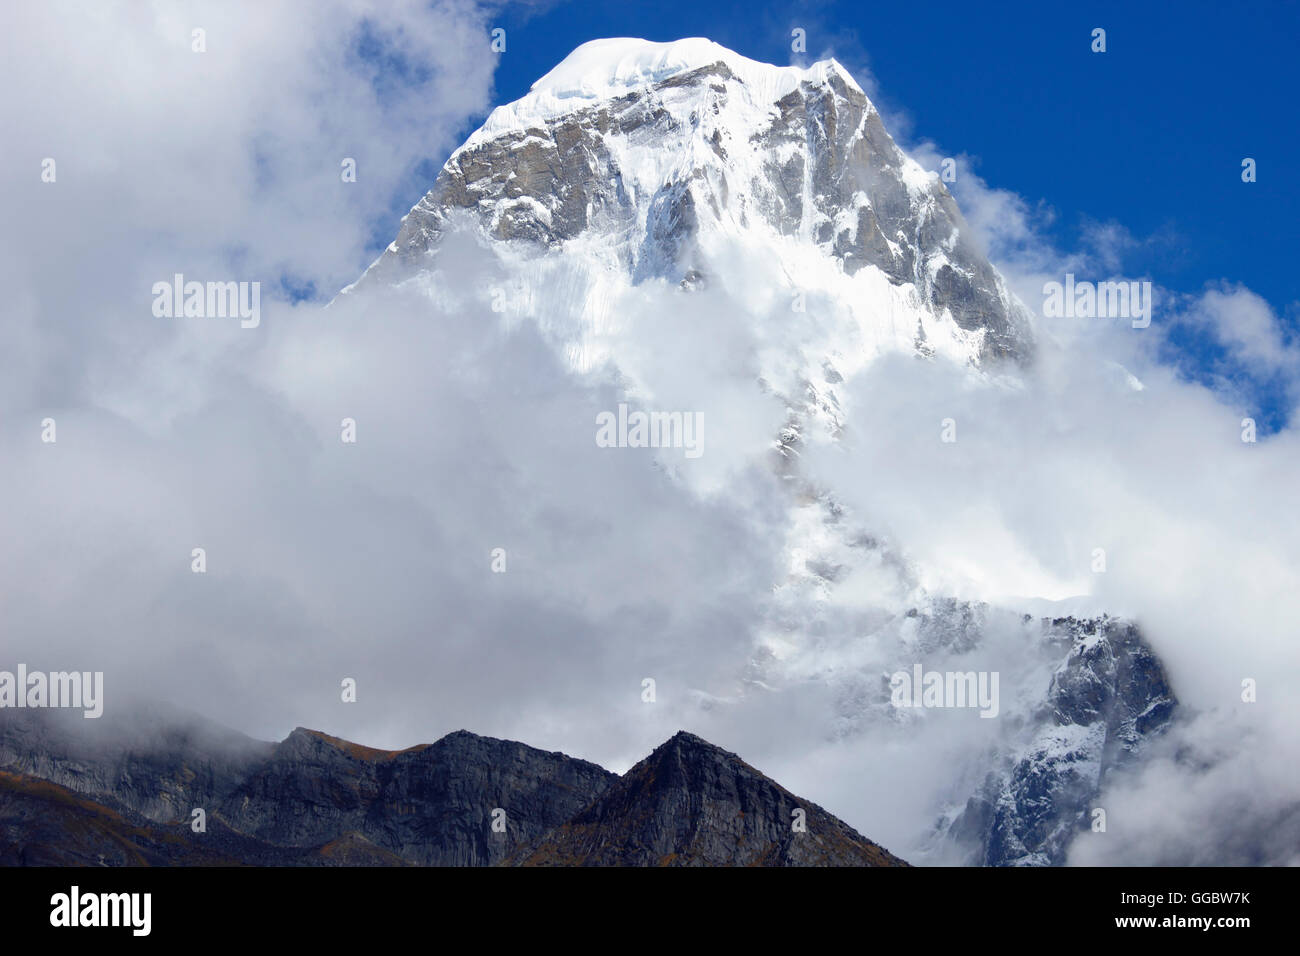 View of Kusom Khangkaru ( Charpata holy Mountain) - on route Tangnag-Hinku valey - Stock Image